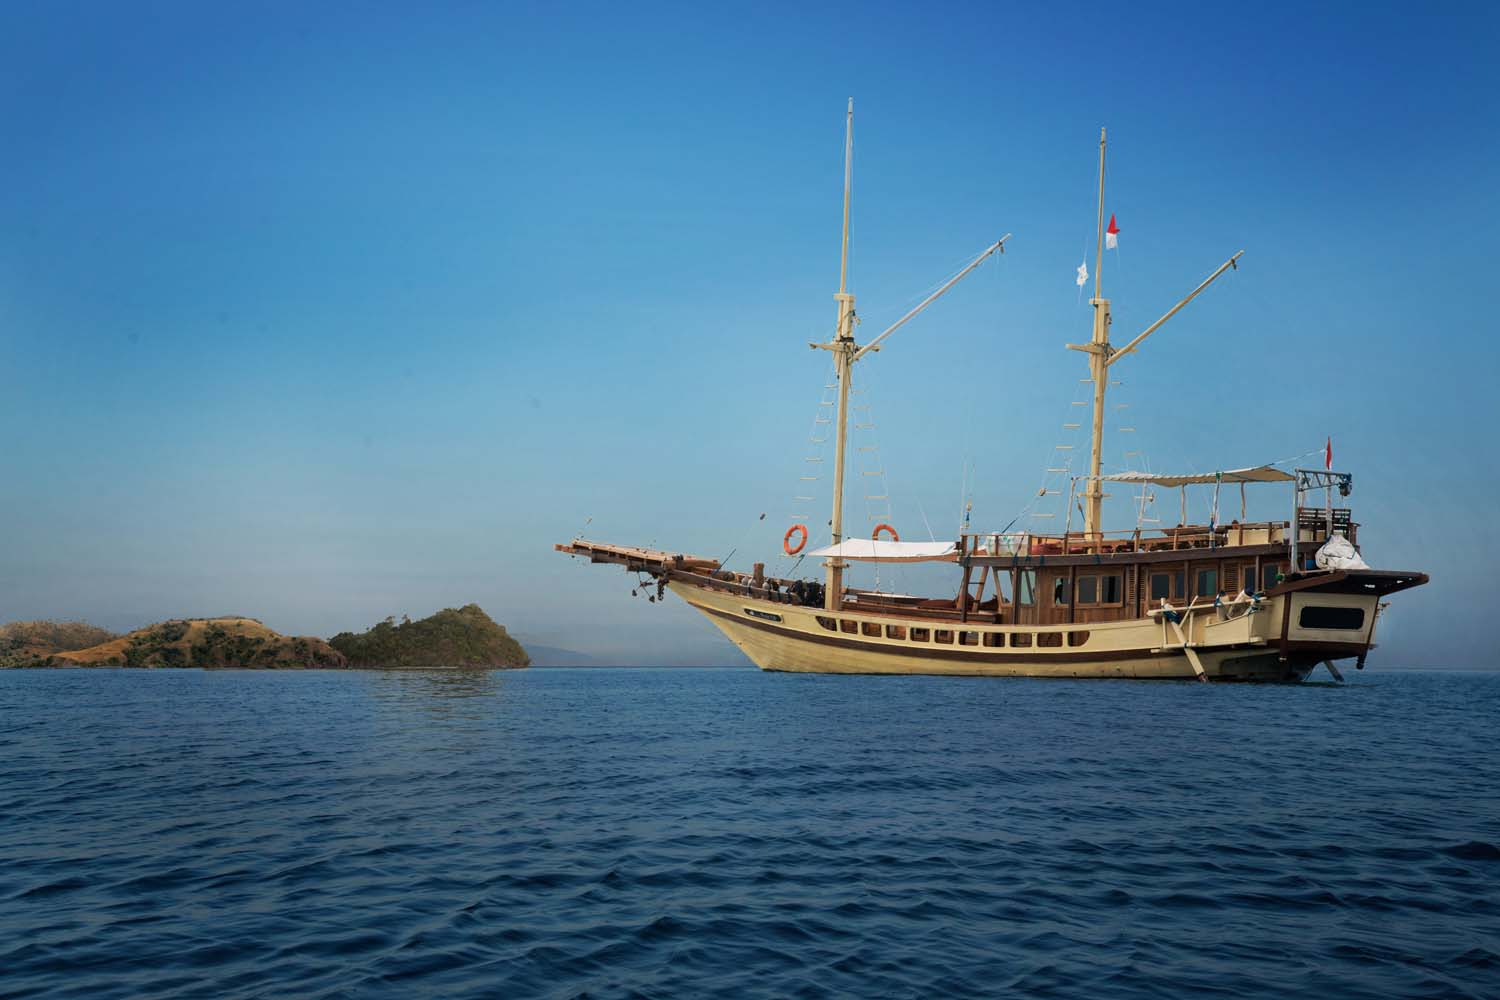 Komodo Boat Charter Labuan Bajo, komodo boat rental, labuan bajo boat charter, labuan bajo cruise, phinisi boat komodo, komodo boat tours, boat rent labuan bajo 2018, private cruise komodo, luxury yacht komodo, speedboat rental labuan bajo.